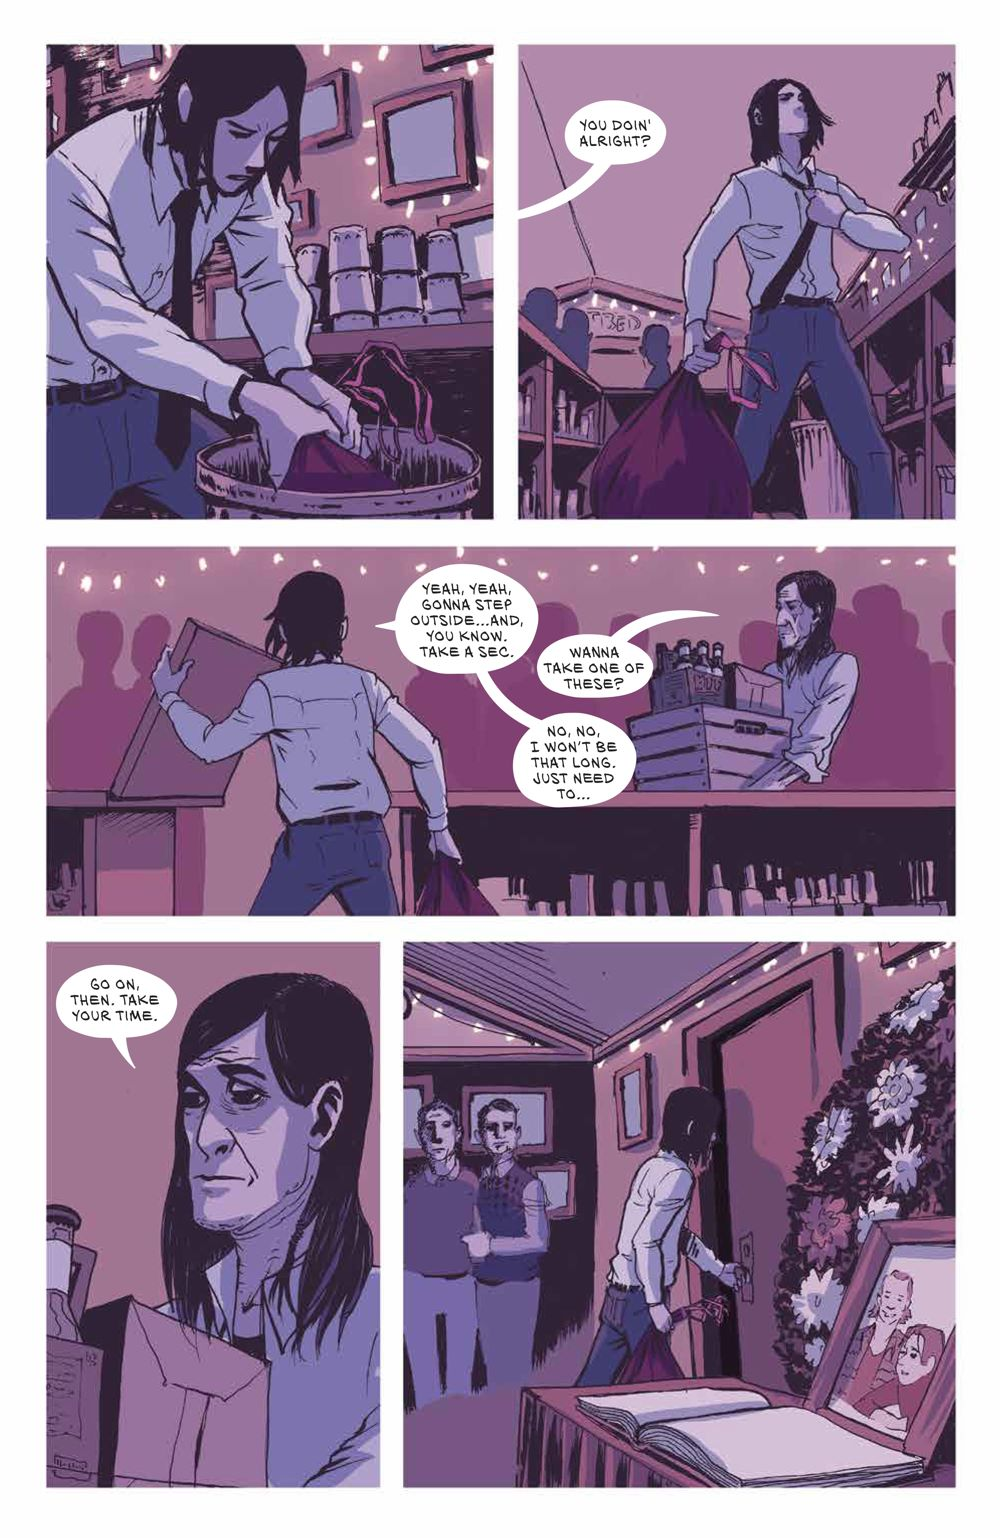 DownRiverPeople_SC_PRESS_21 ComicList Previews: THE DOWN RIVER PEOPLE GN